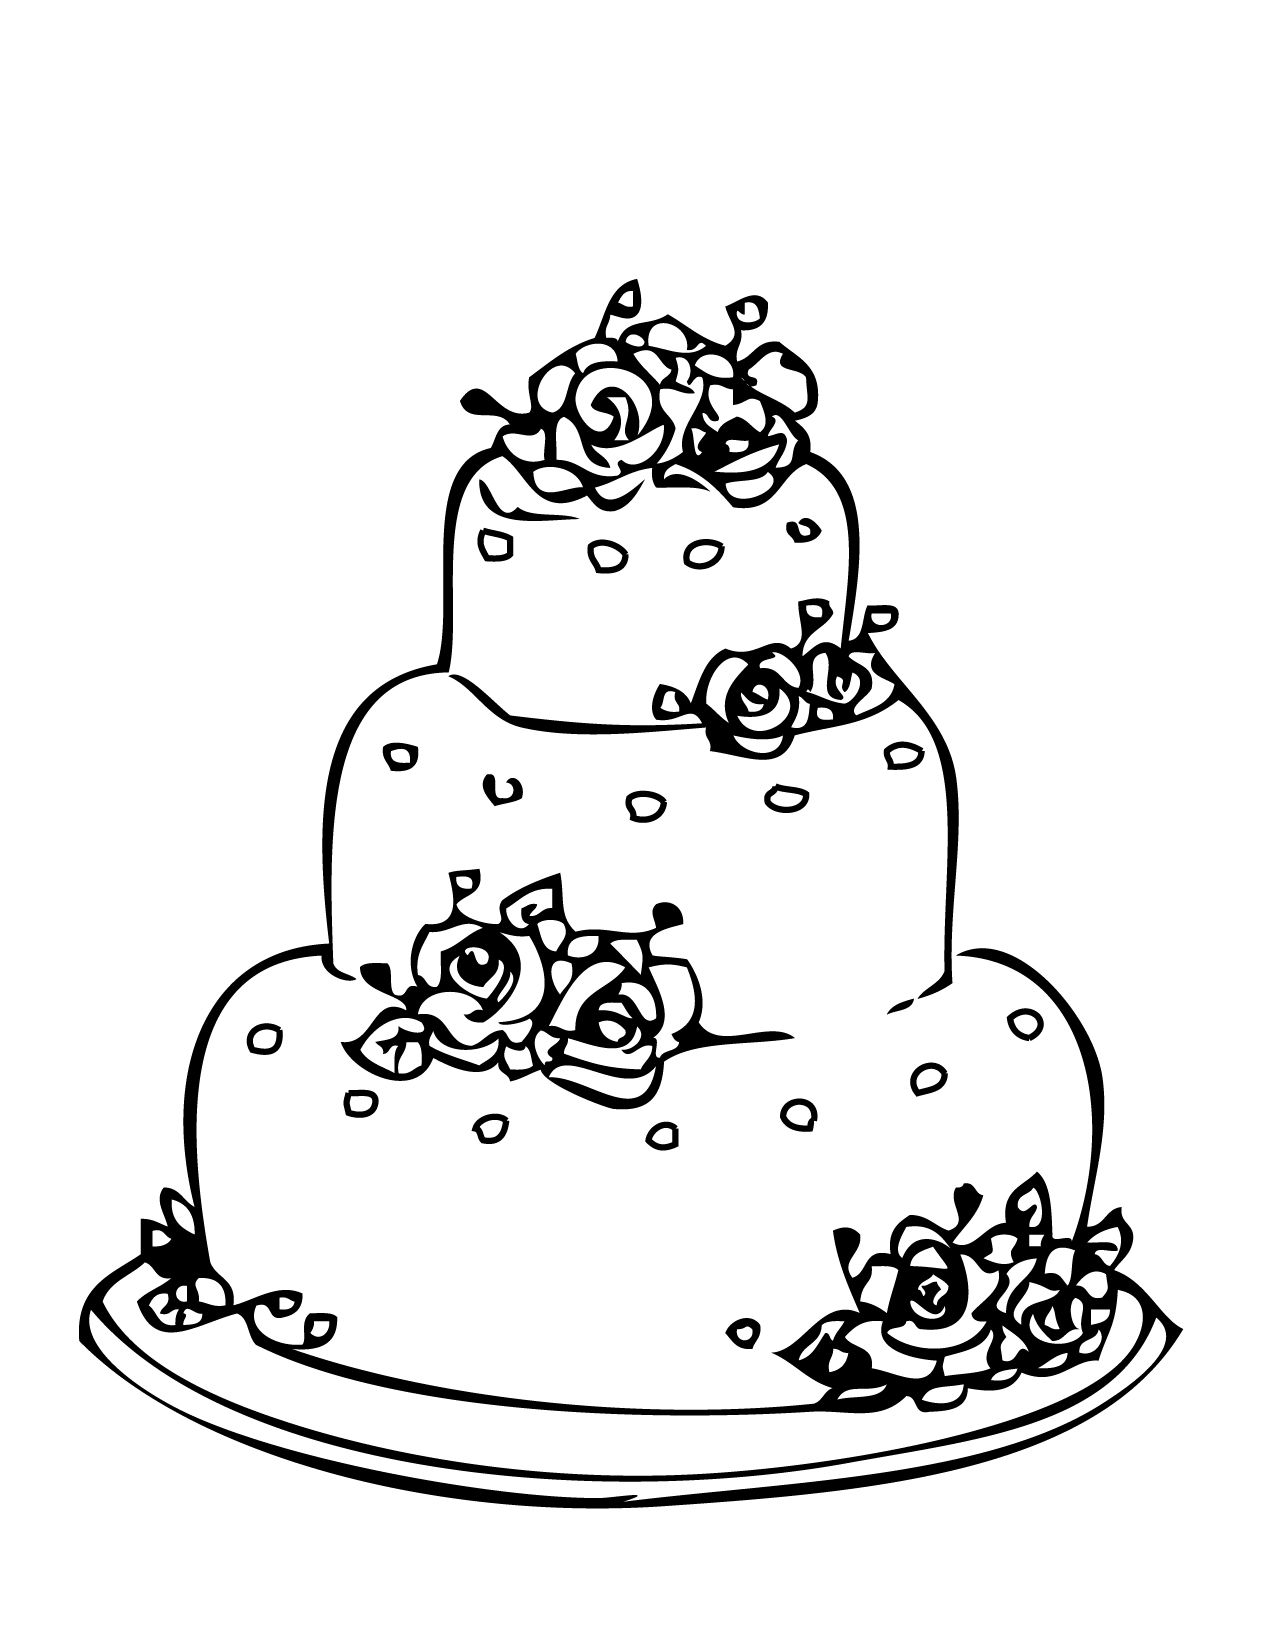 Cake clipart colouring page Favor Kids a Make Wedding